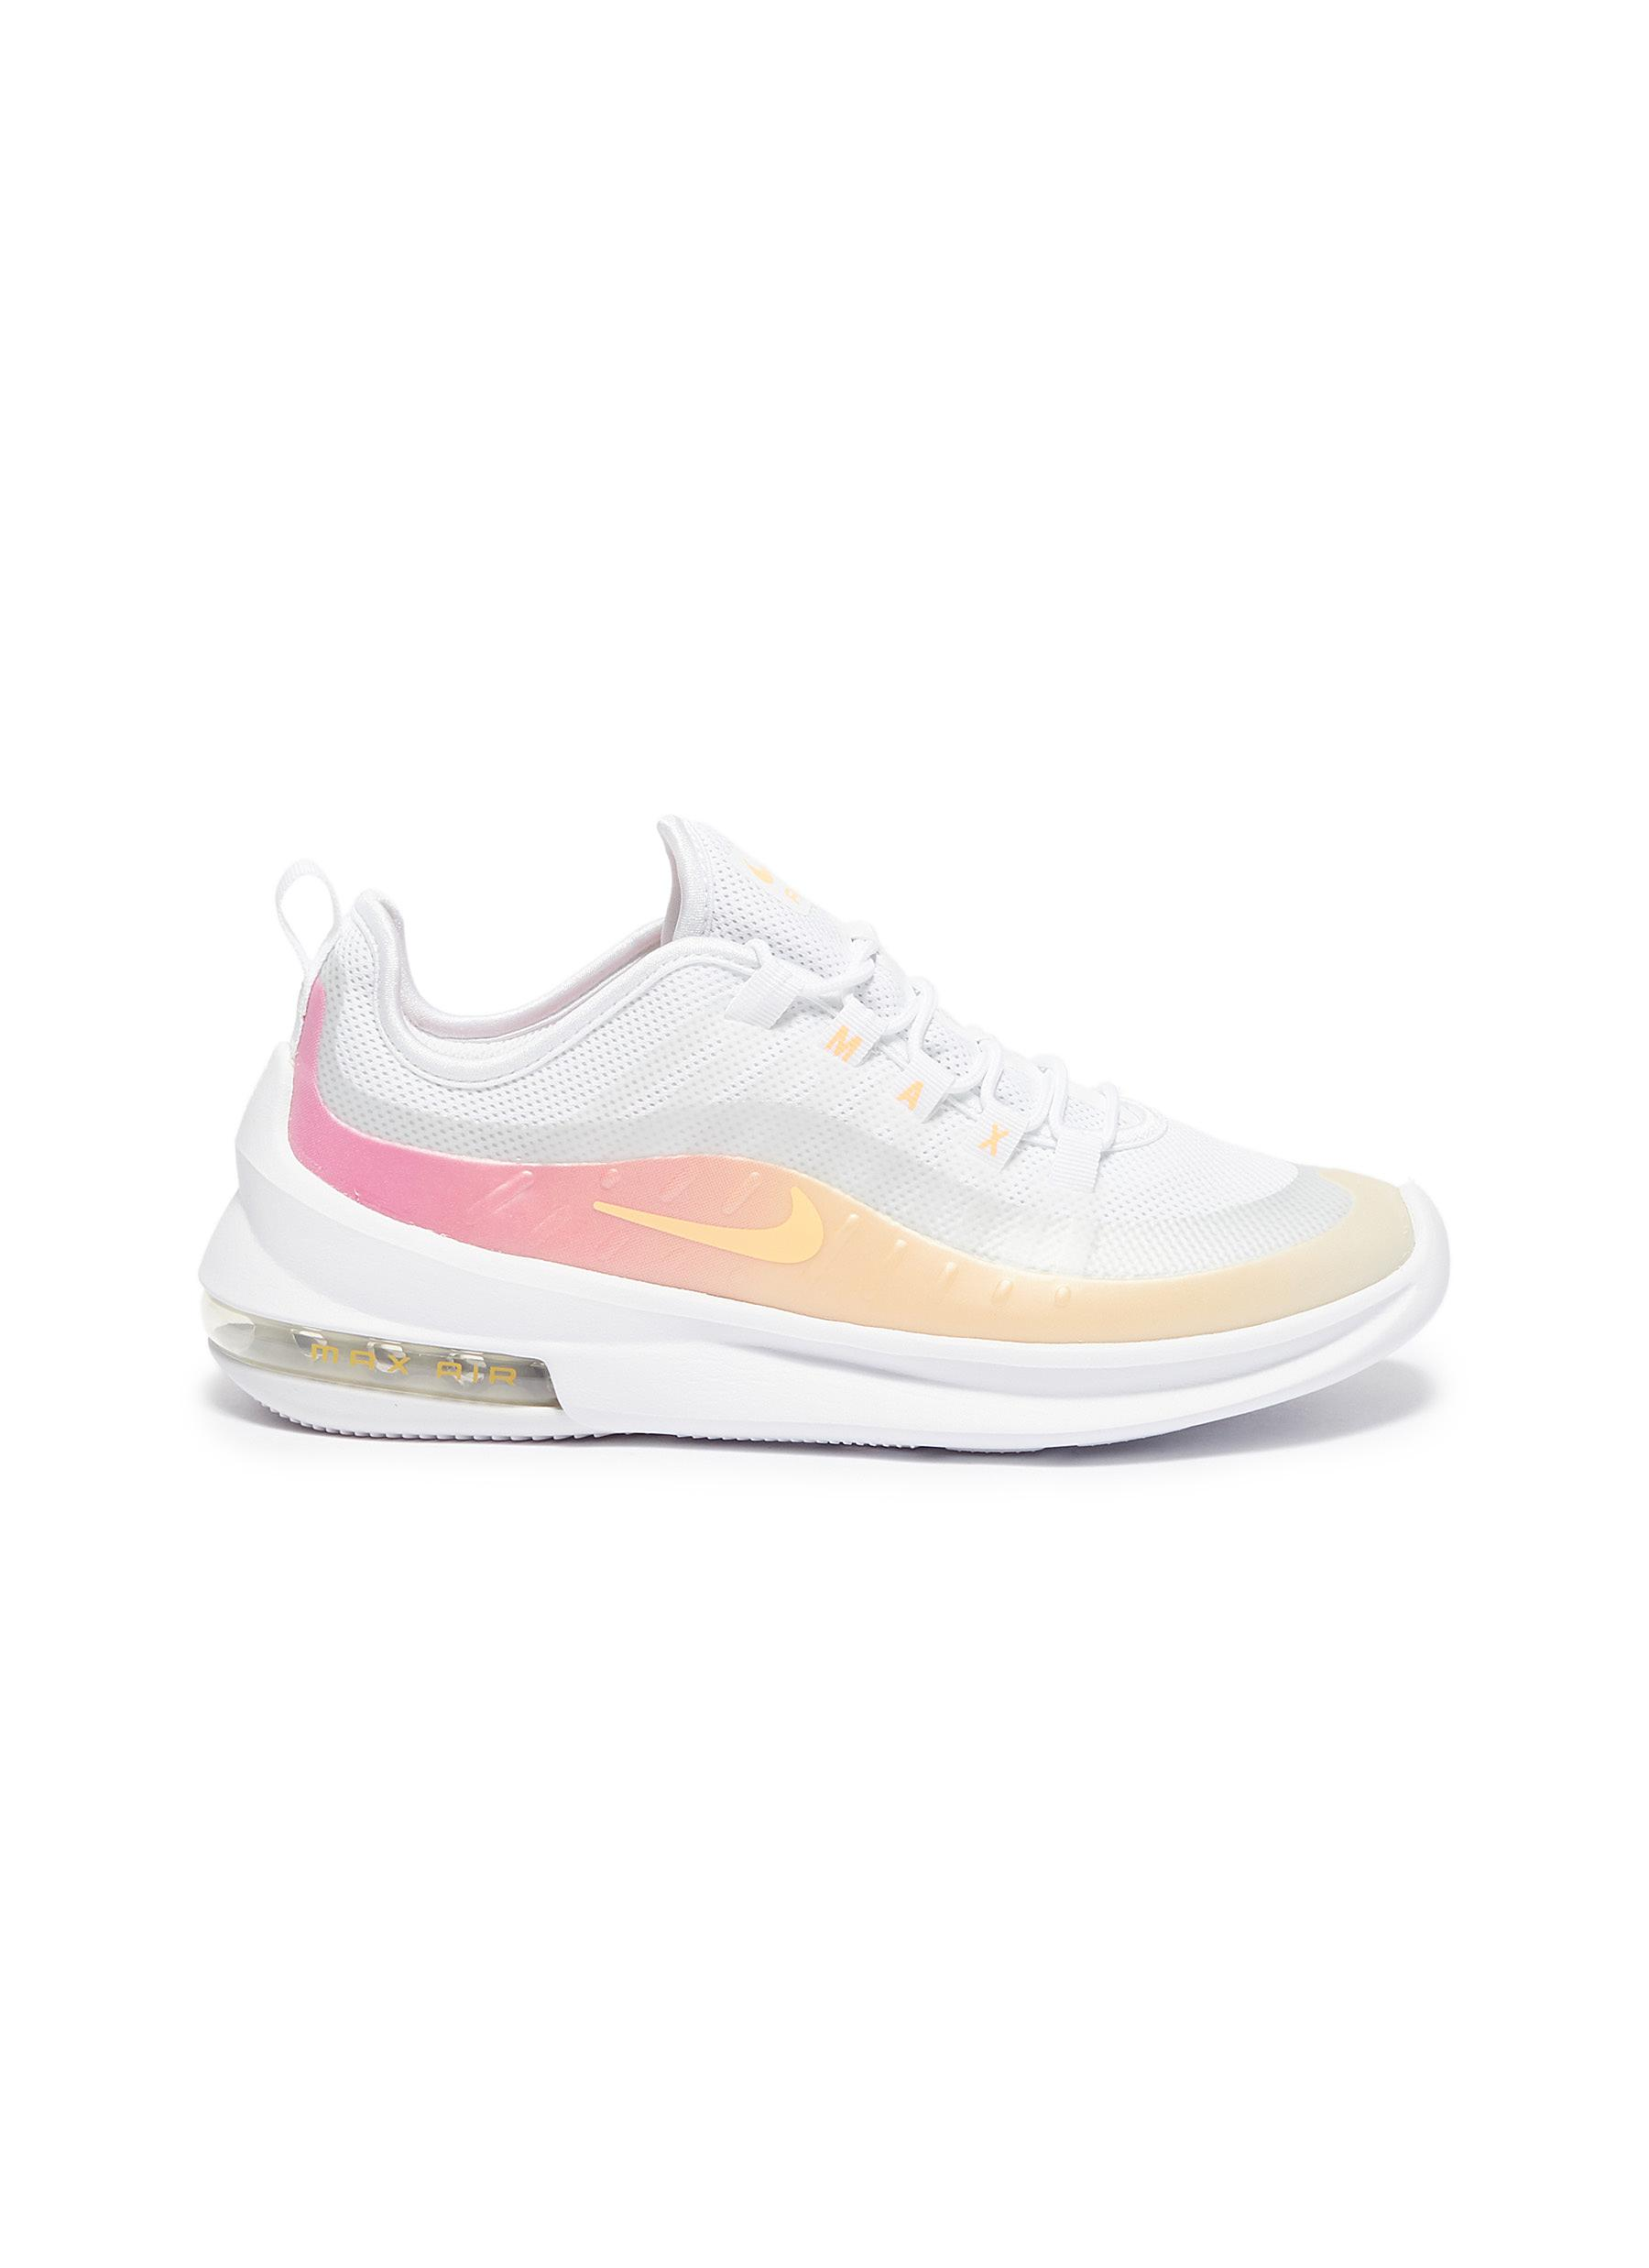 official photos 0c8bb 08f2c Main View - Click To Enlarge - Nike -  Air Max Axis PREM  gradient